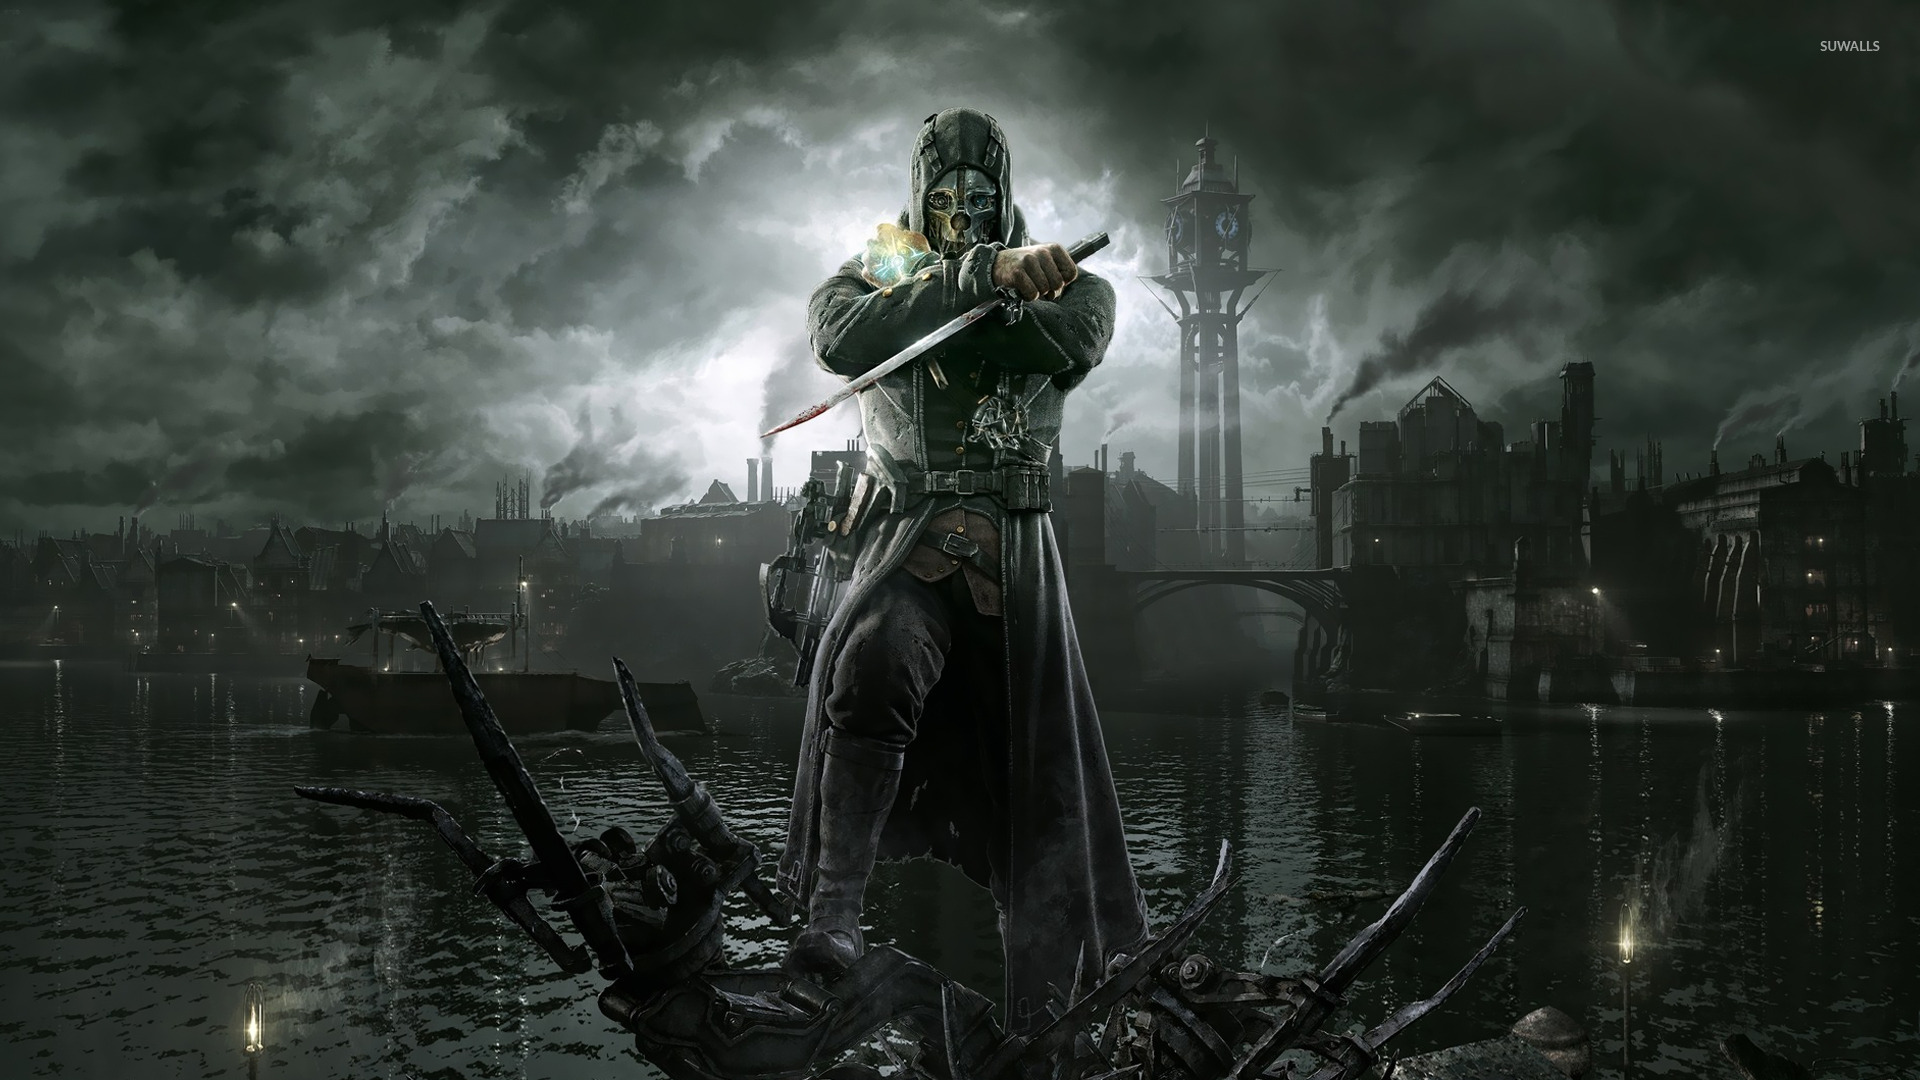 Dishonored Wallpaper Game Wallpapers 15258